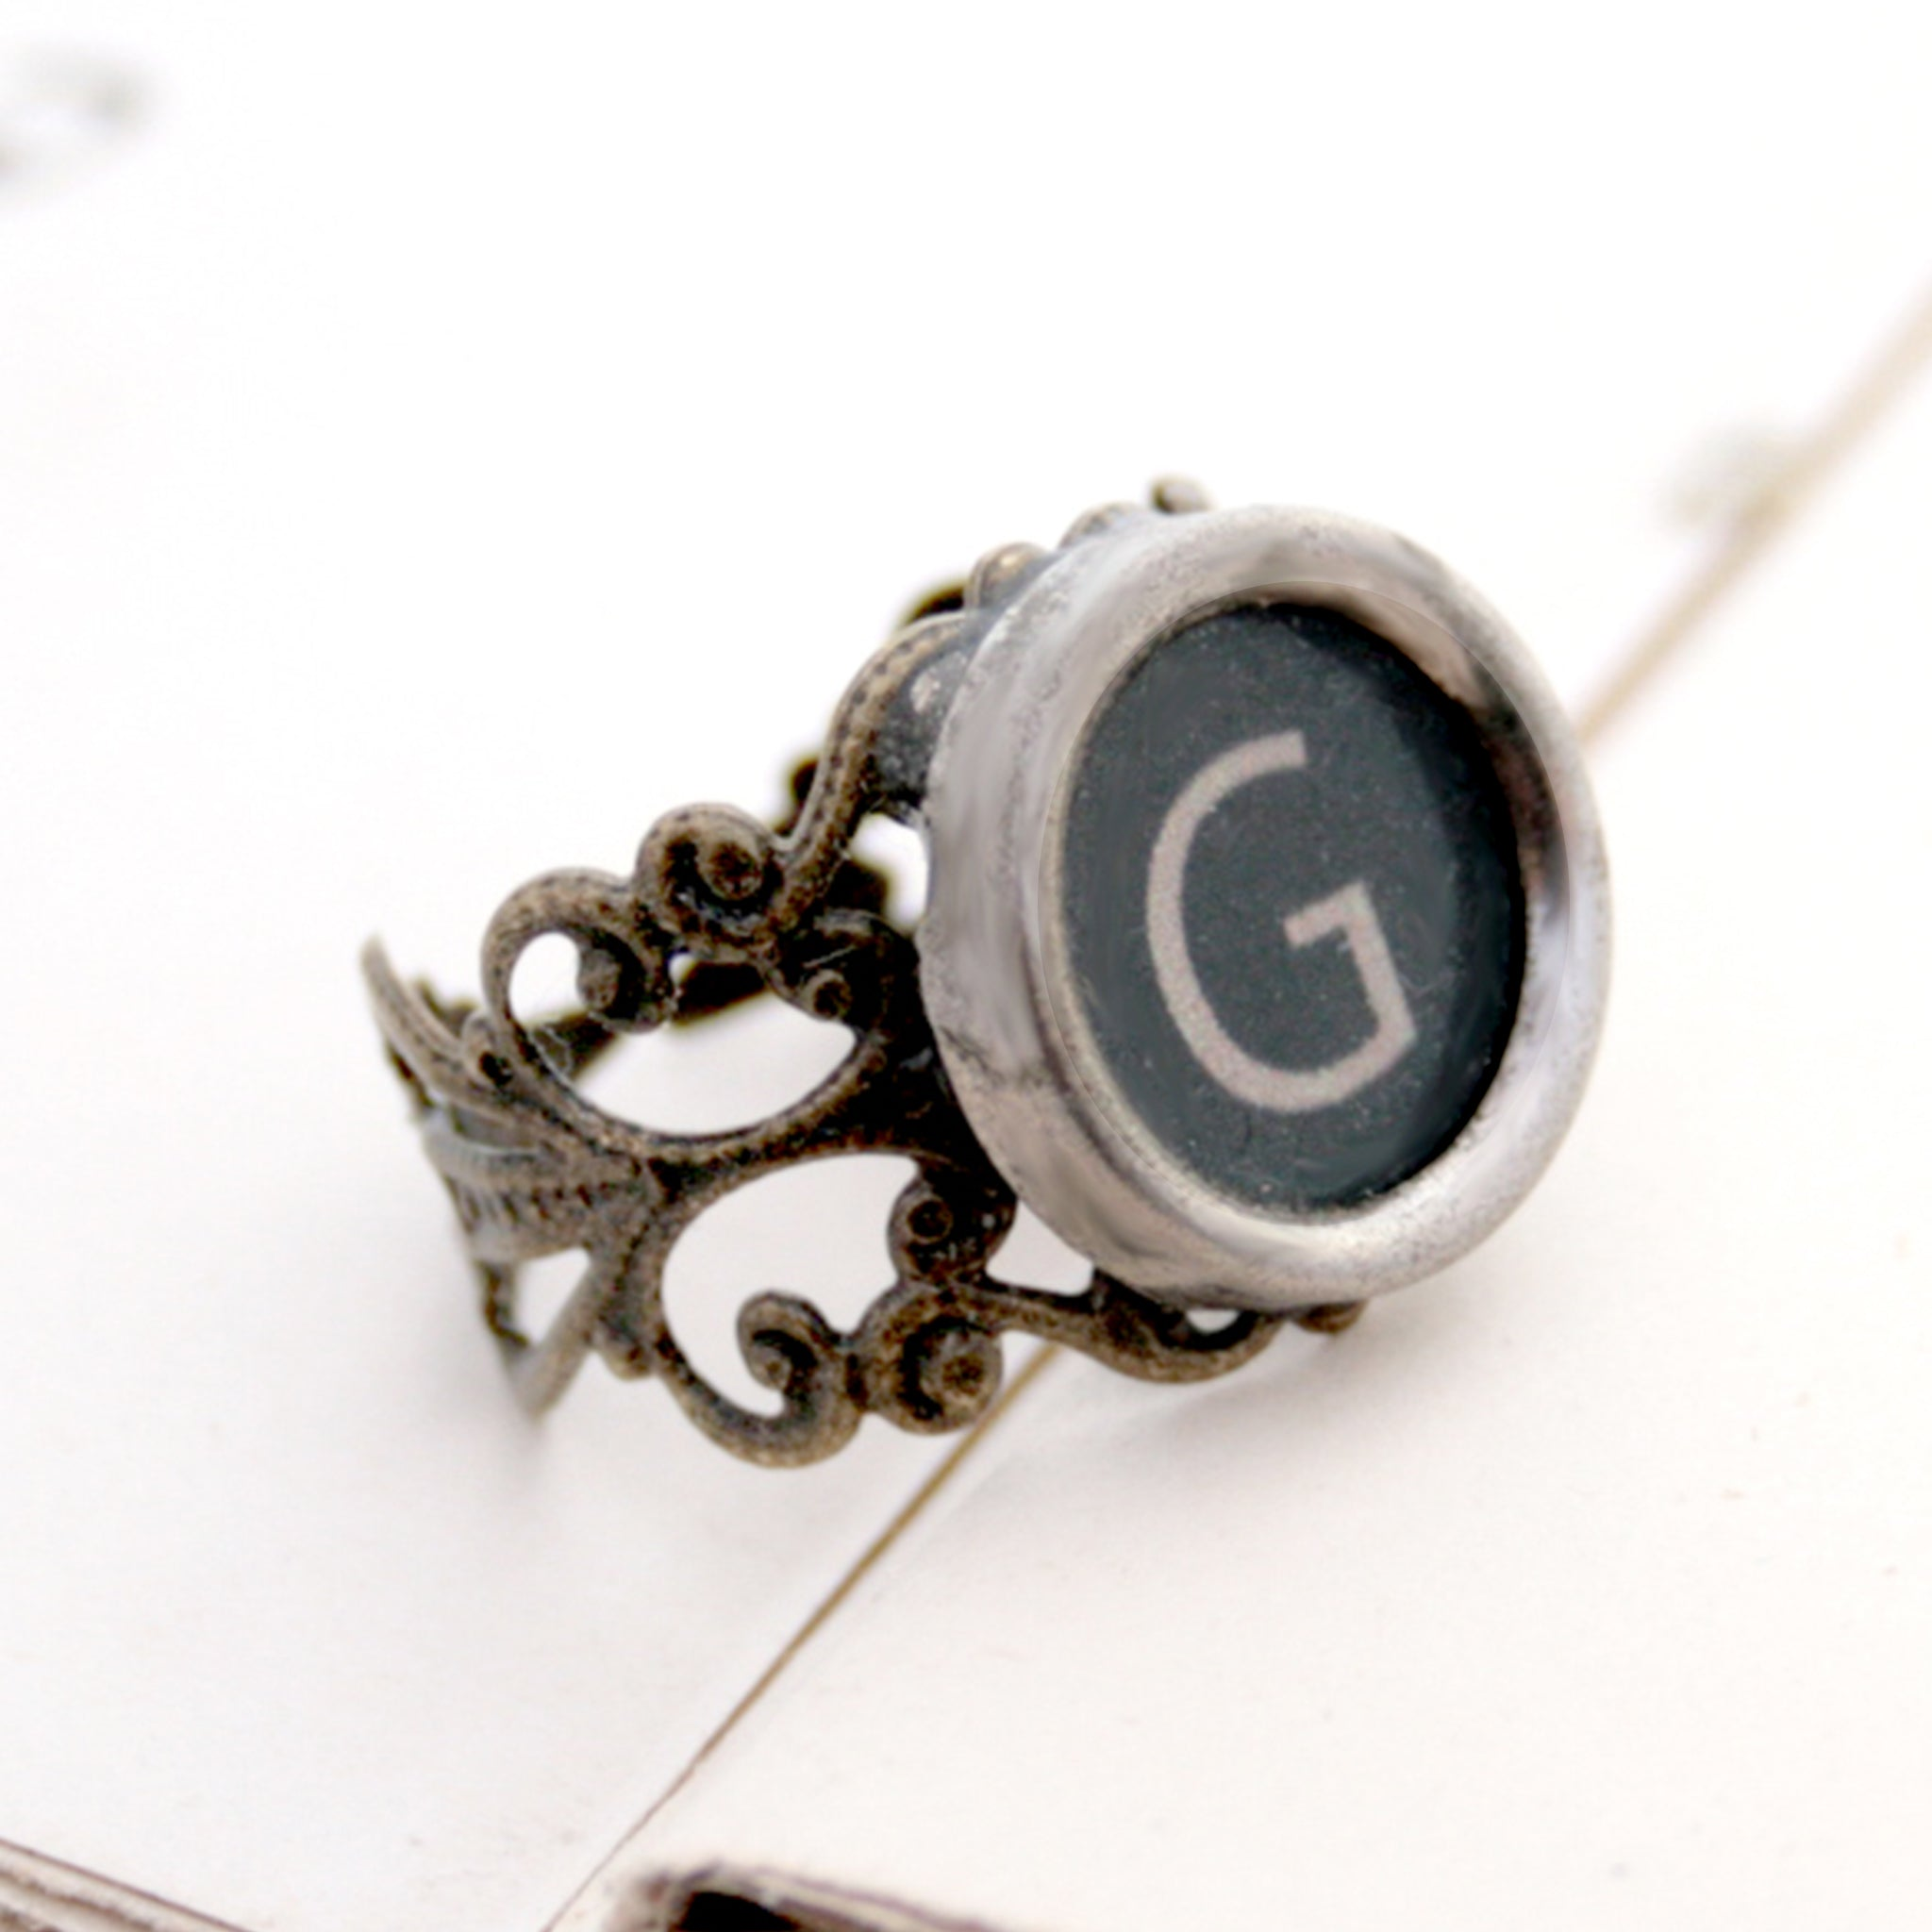 initial ring made of authentic vintage typewriter key in black color